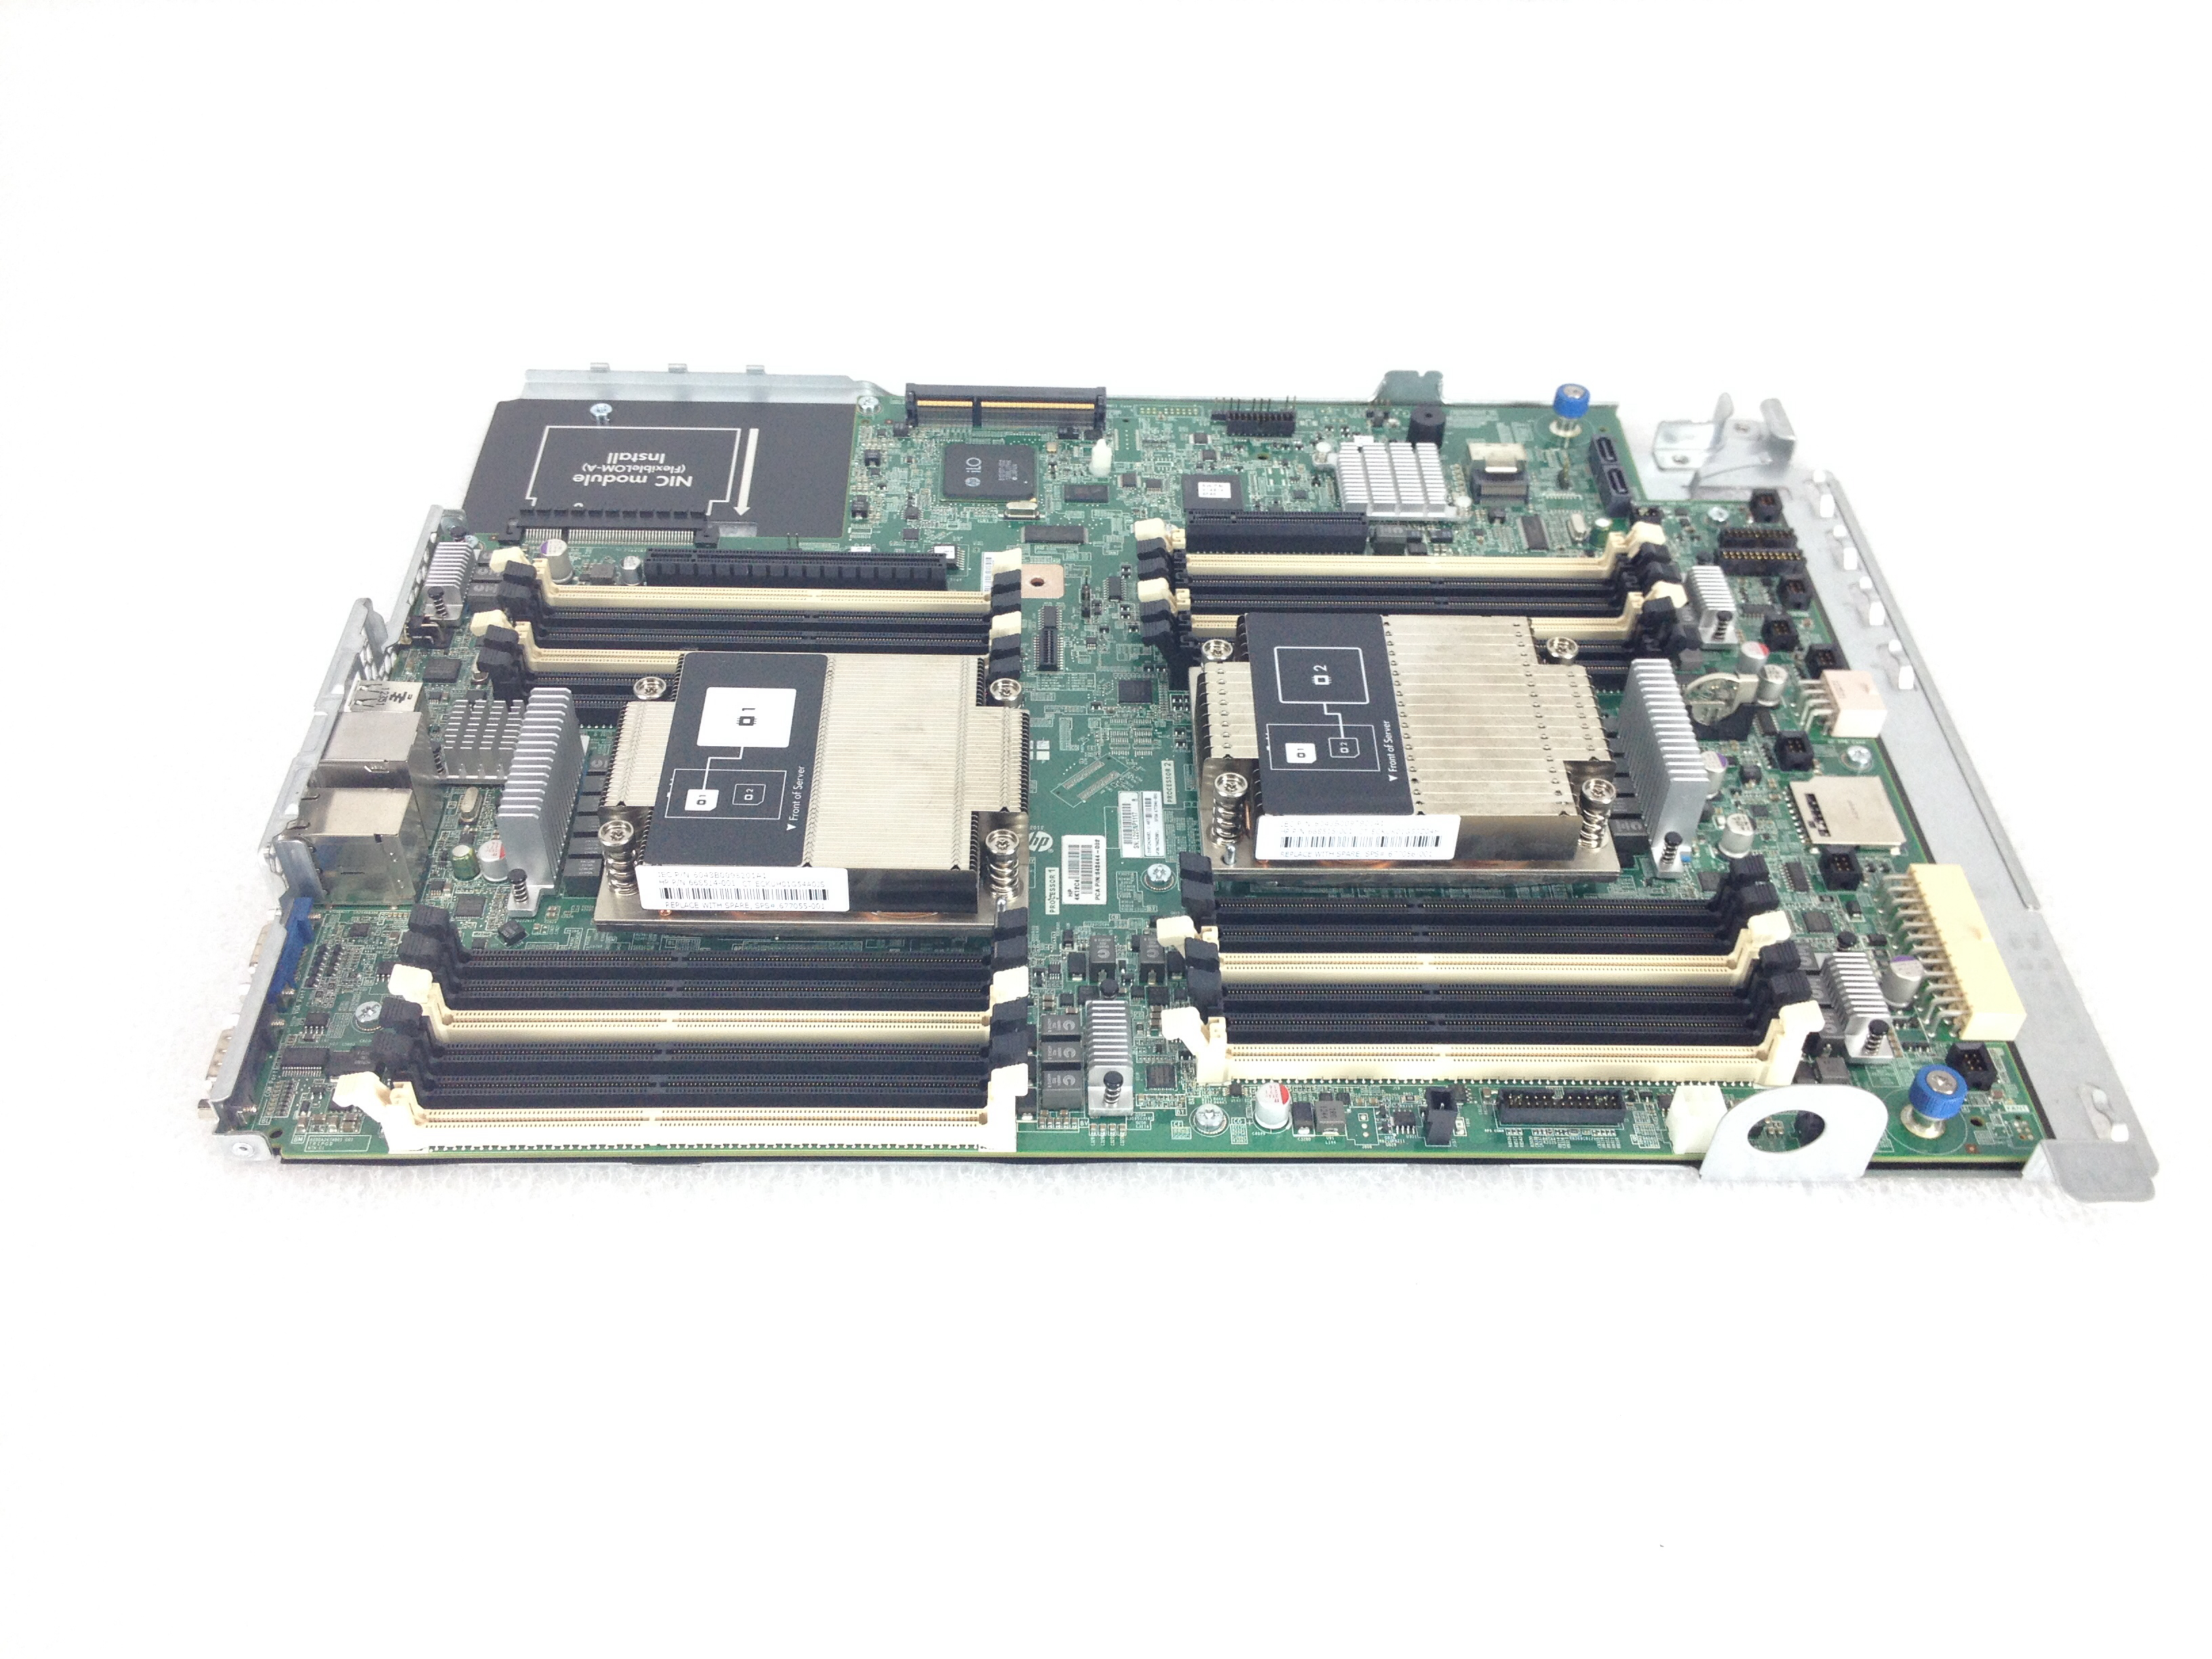 HP Proliant DL160 Gen8 Server System Board w/ Heatsink (677046-001)